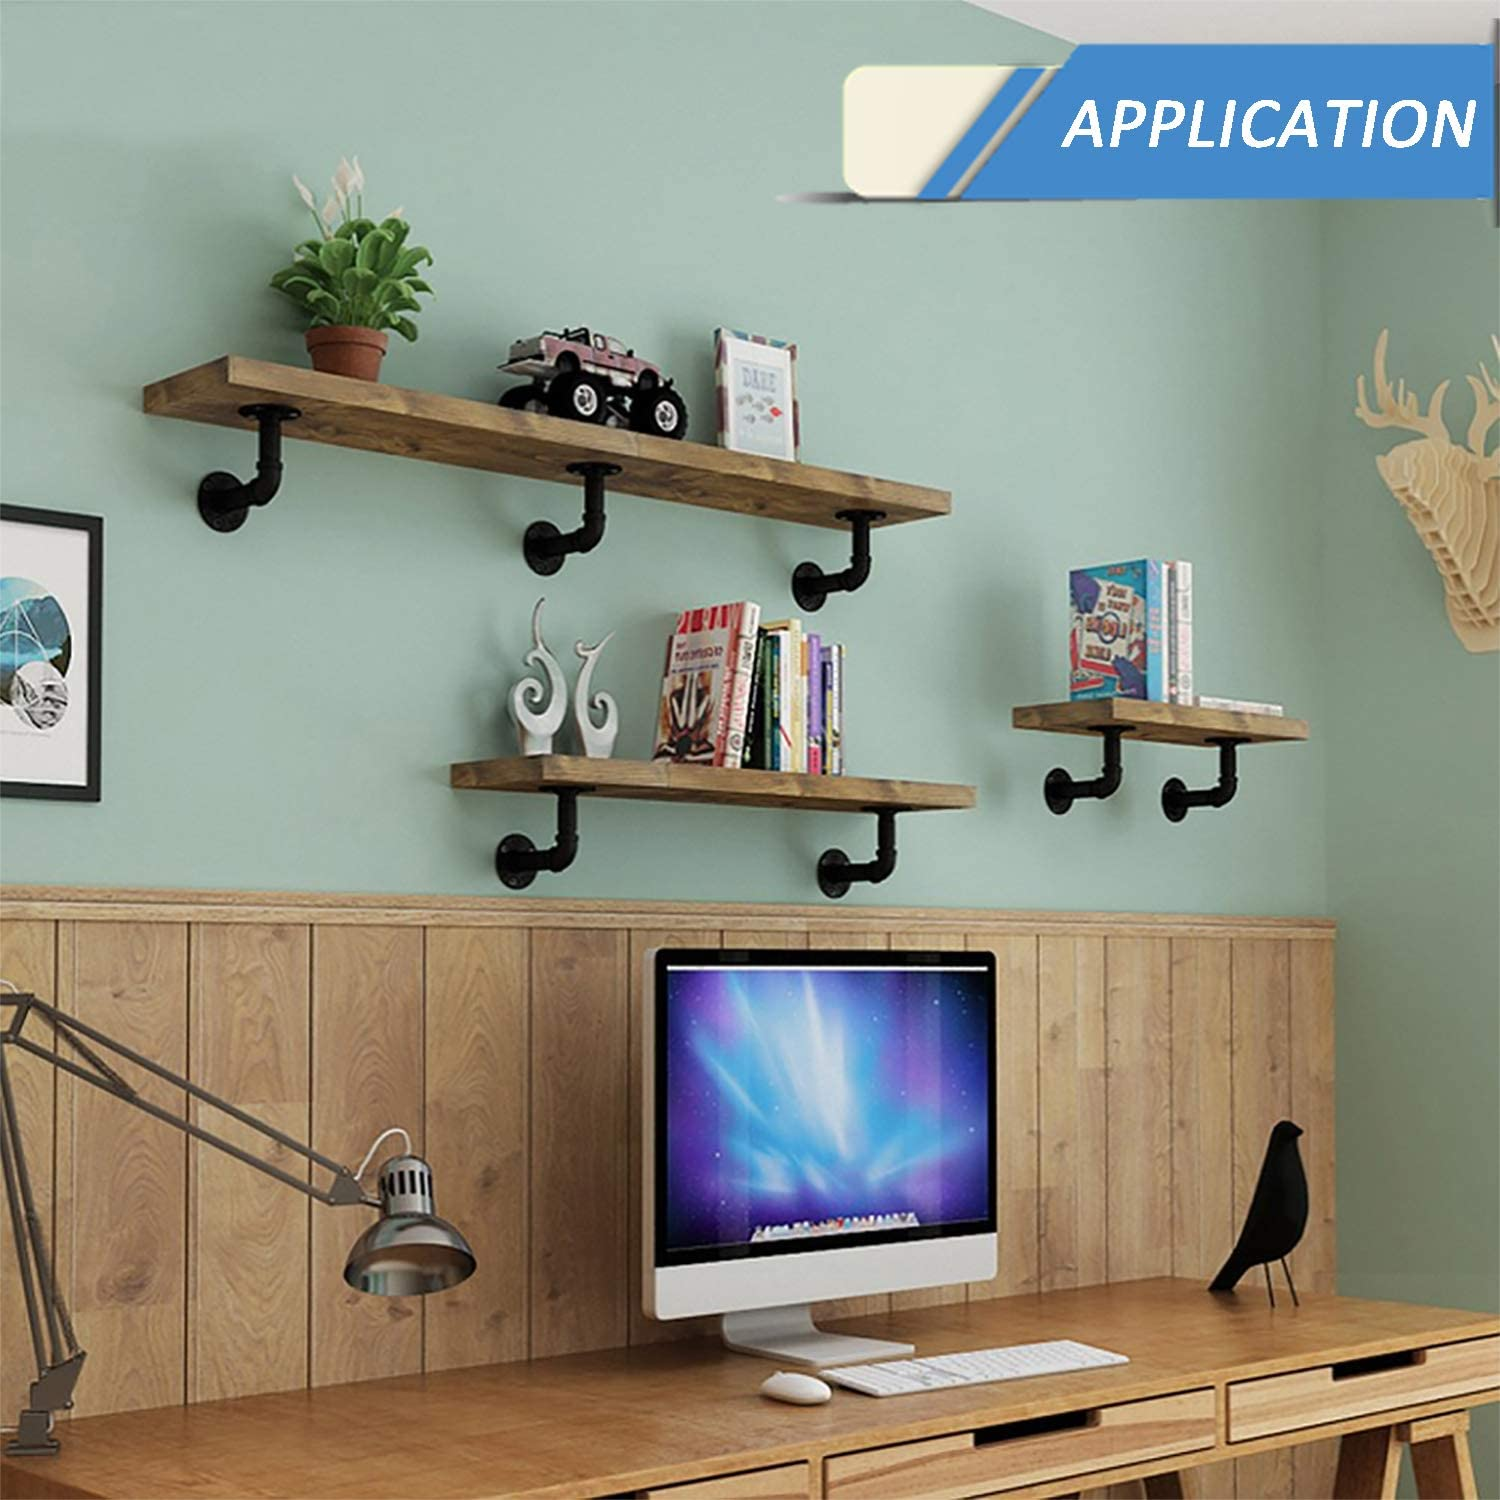 Pipe Shelf Brackets Vintage Look Industrial DIY L Pipe Floating Shelf Brackets for Custom Wood Shelves 6 Pack Black 12X17 All Metal Rustic Iron Pipe Decor Wall Mounted with Hardware Needed